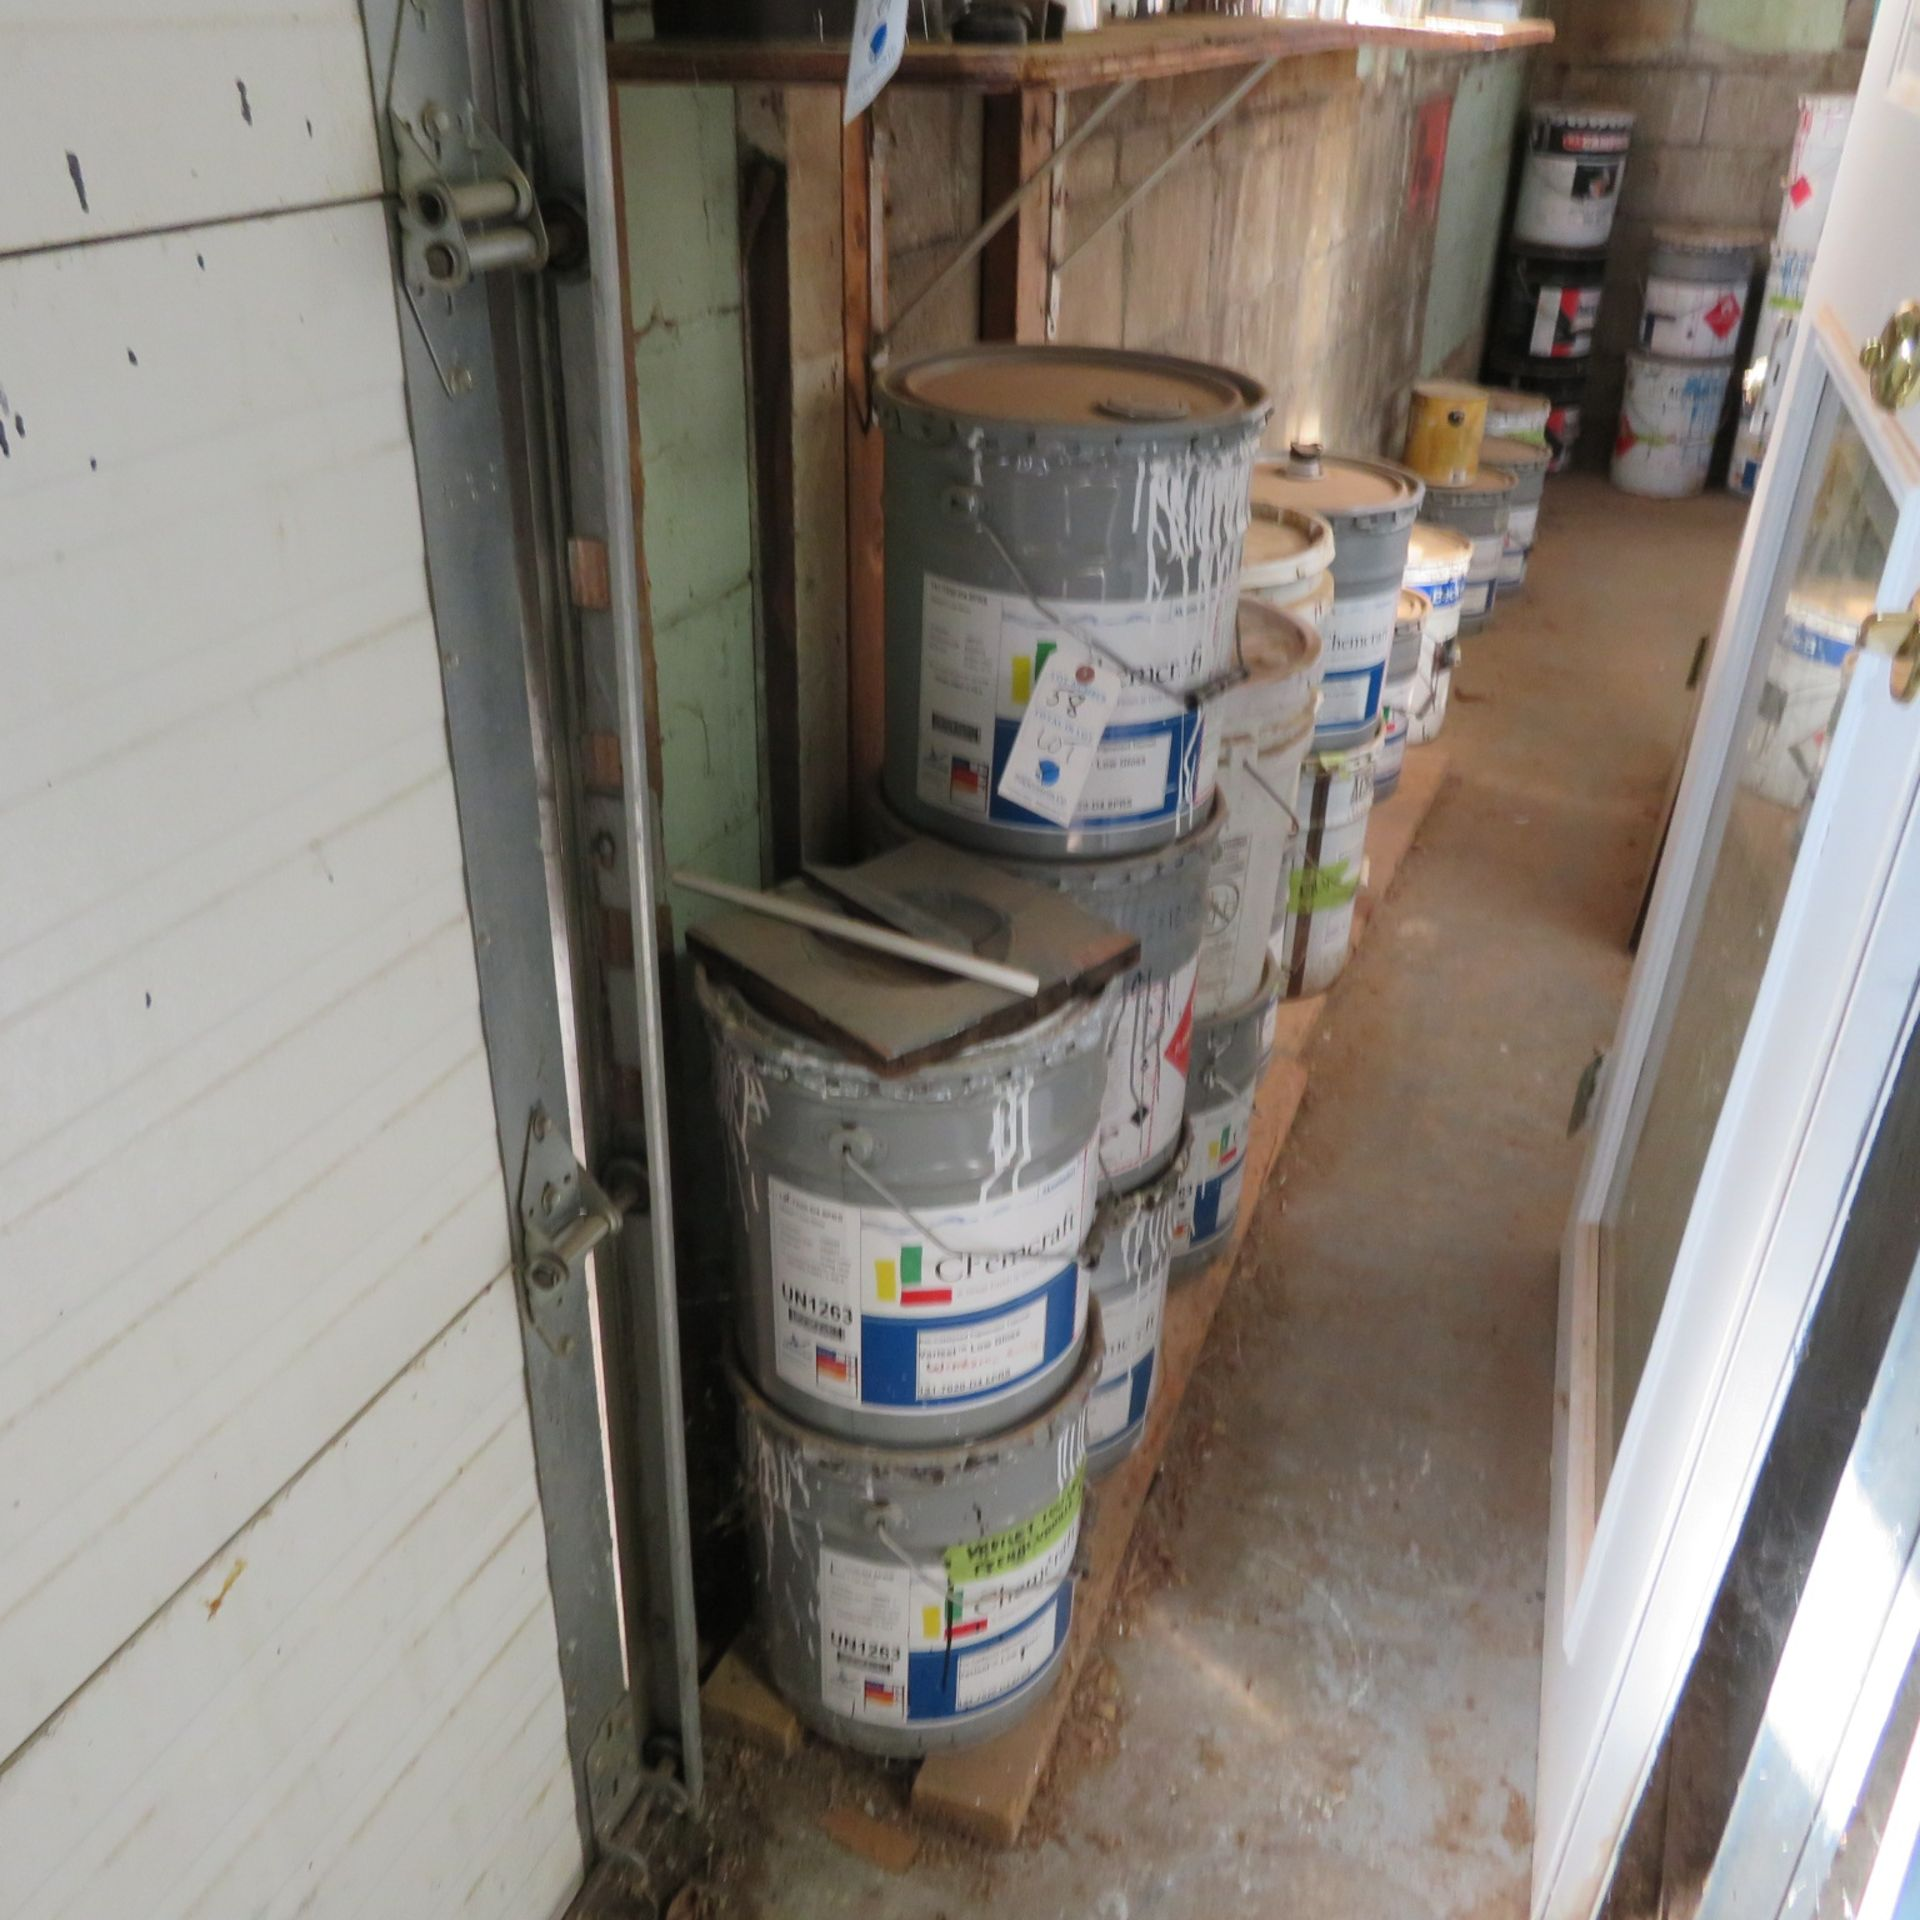 Lot 58 - {LOT} Balance of Paints, Solvents, Stain, ETC throughout building (Take what you want, leave what